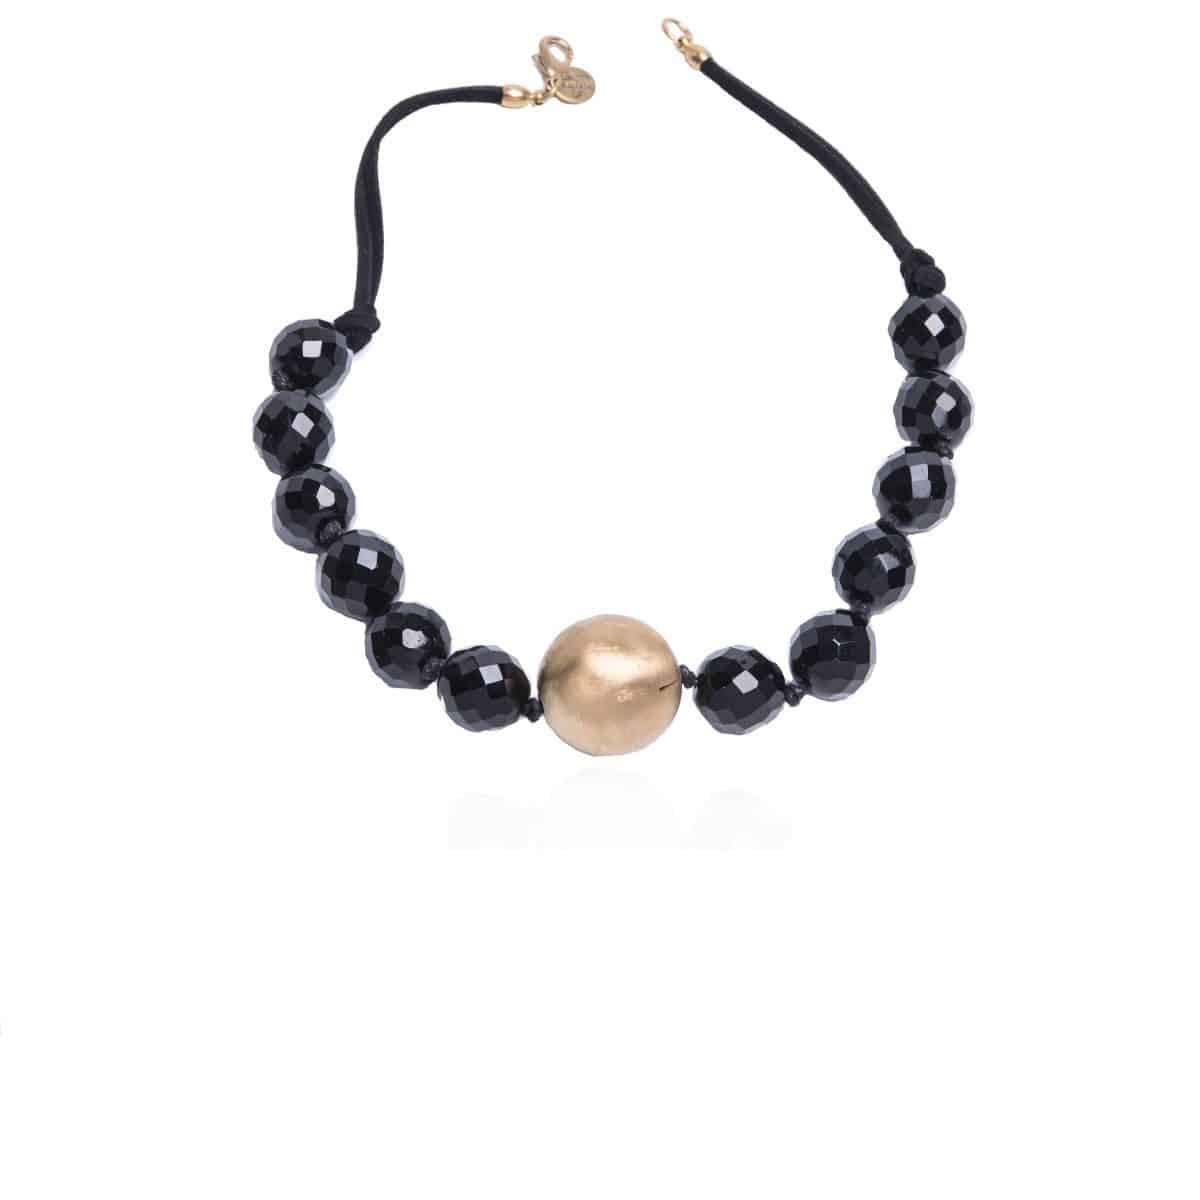 Brussels short necklace with black crystal pieces and a golden ball in the center